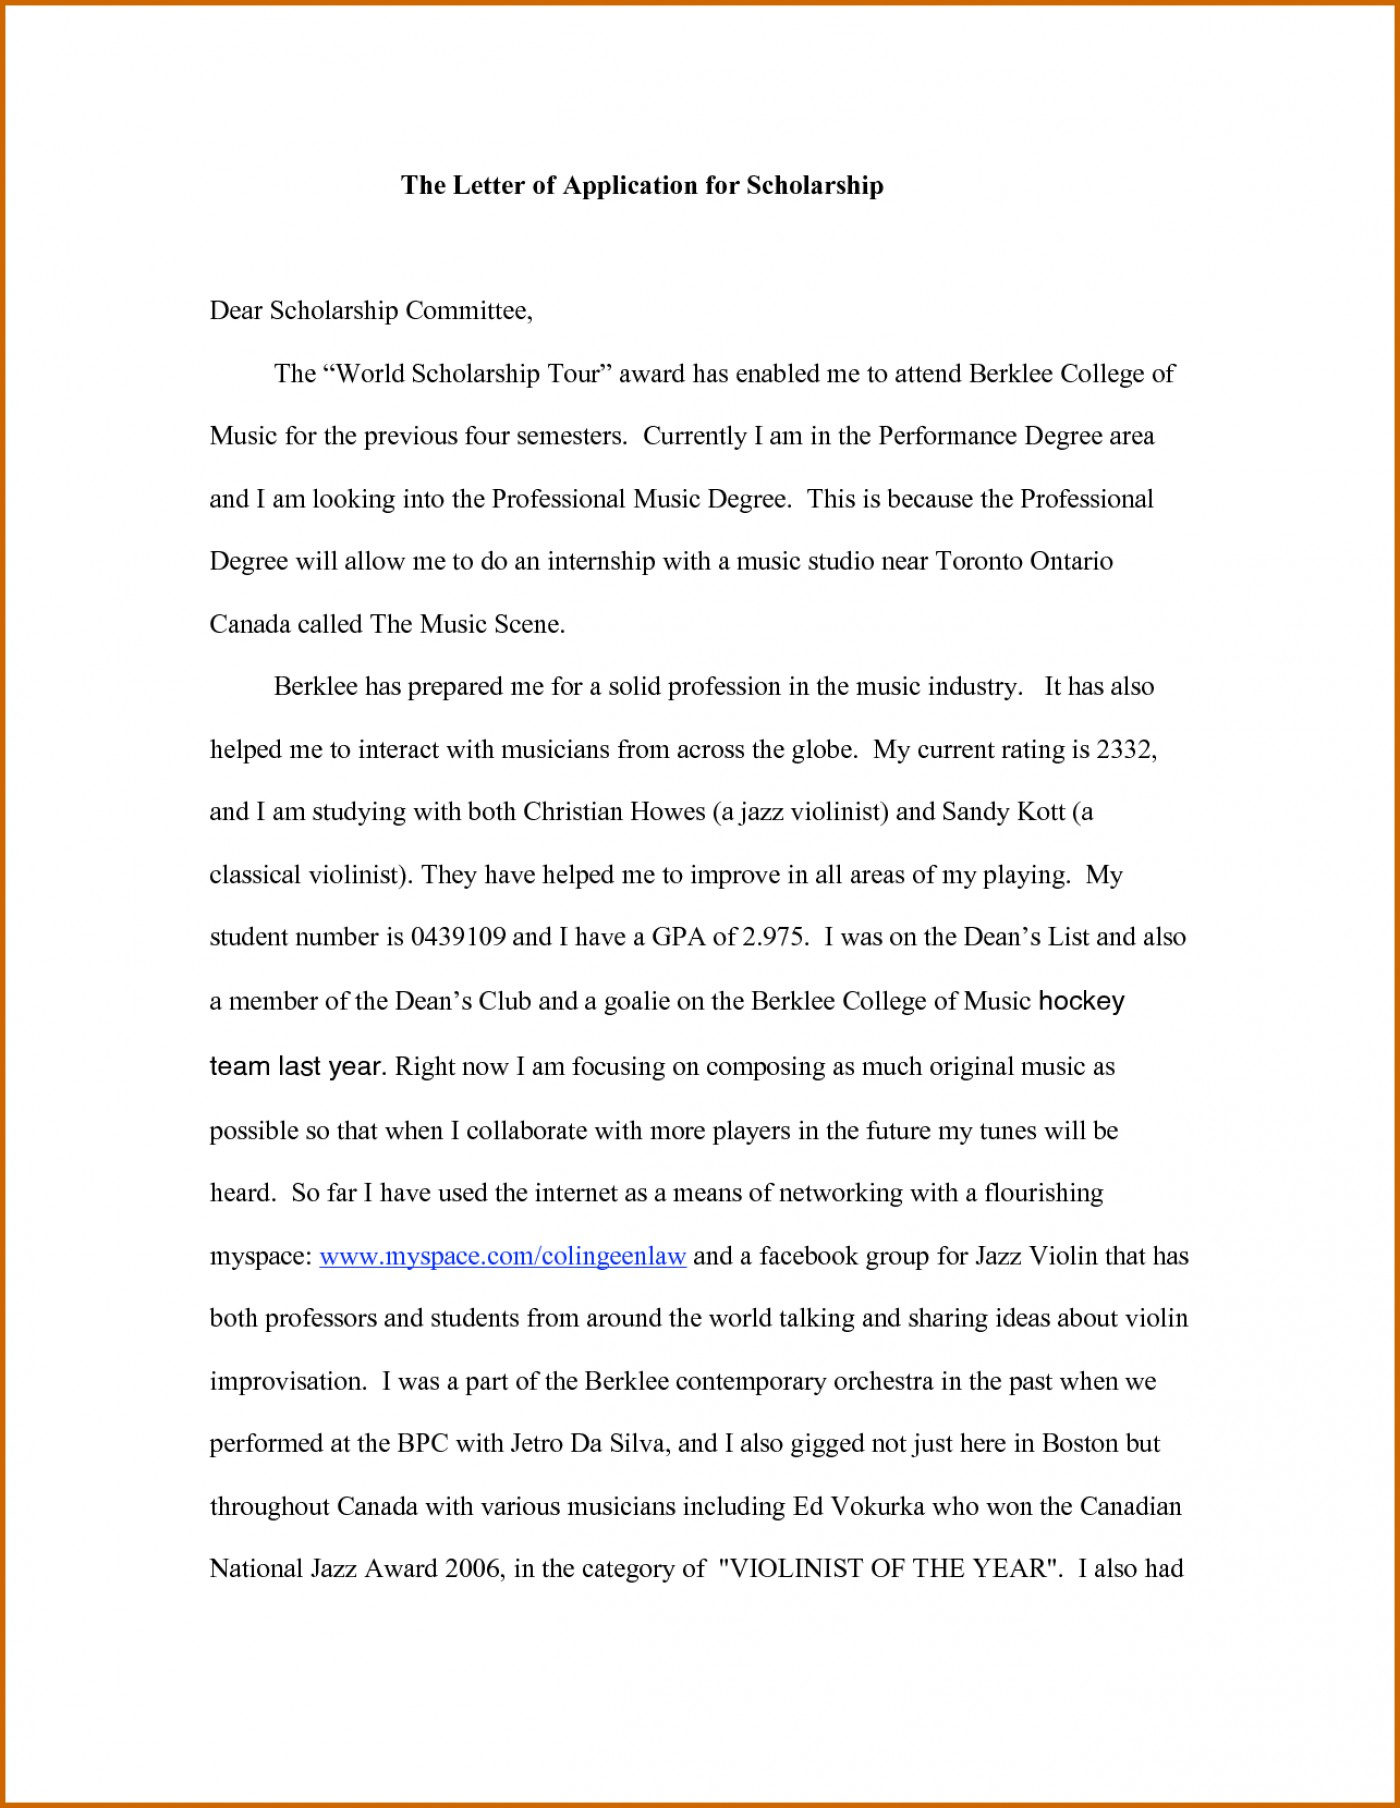 009 Essay Example How To Writepplication For Scholarship What Awesome Write A That Stands Out About Your Career Goals Financial Need 1400